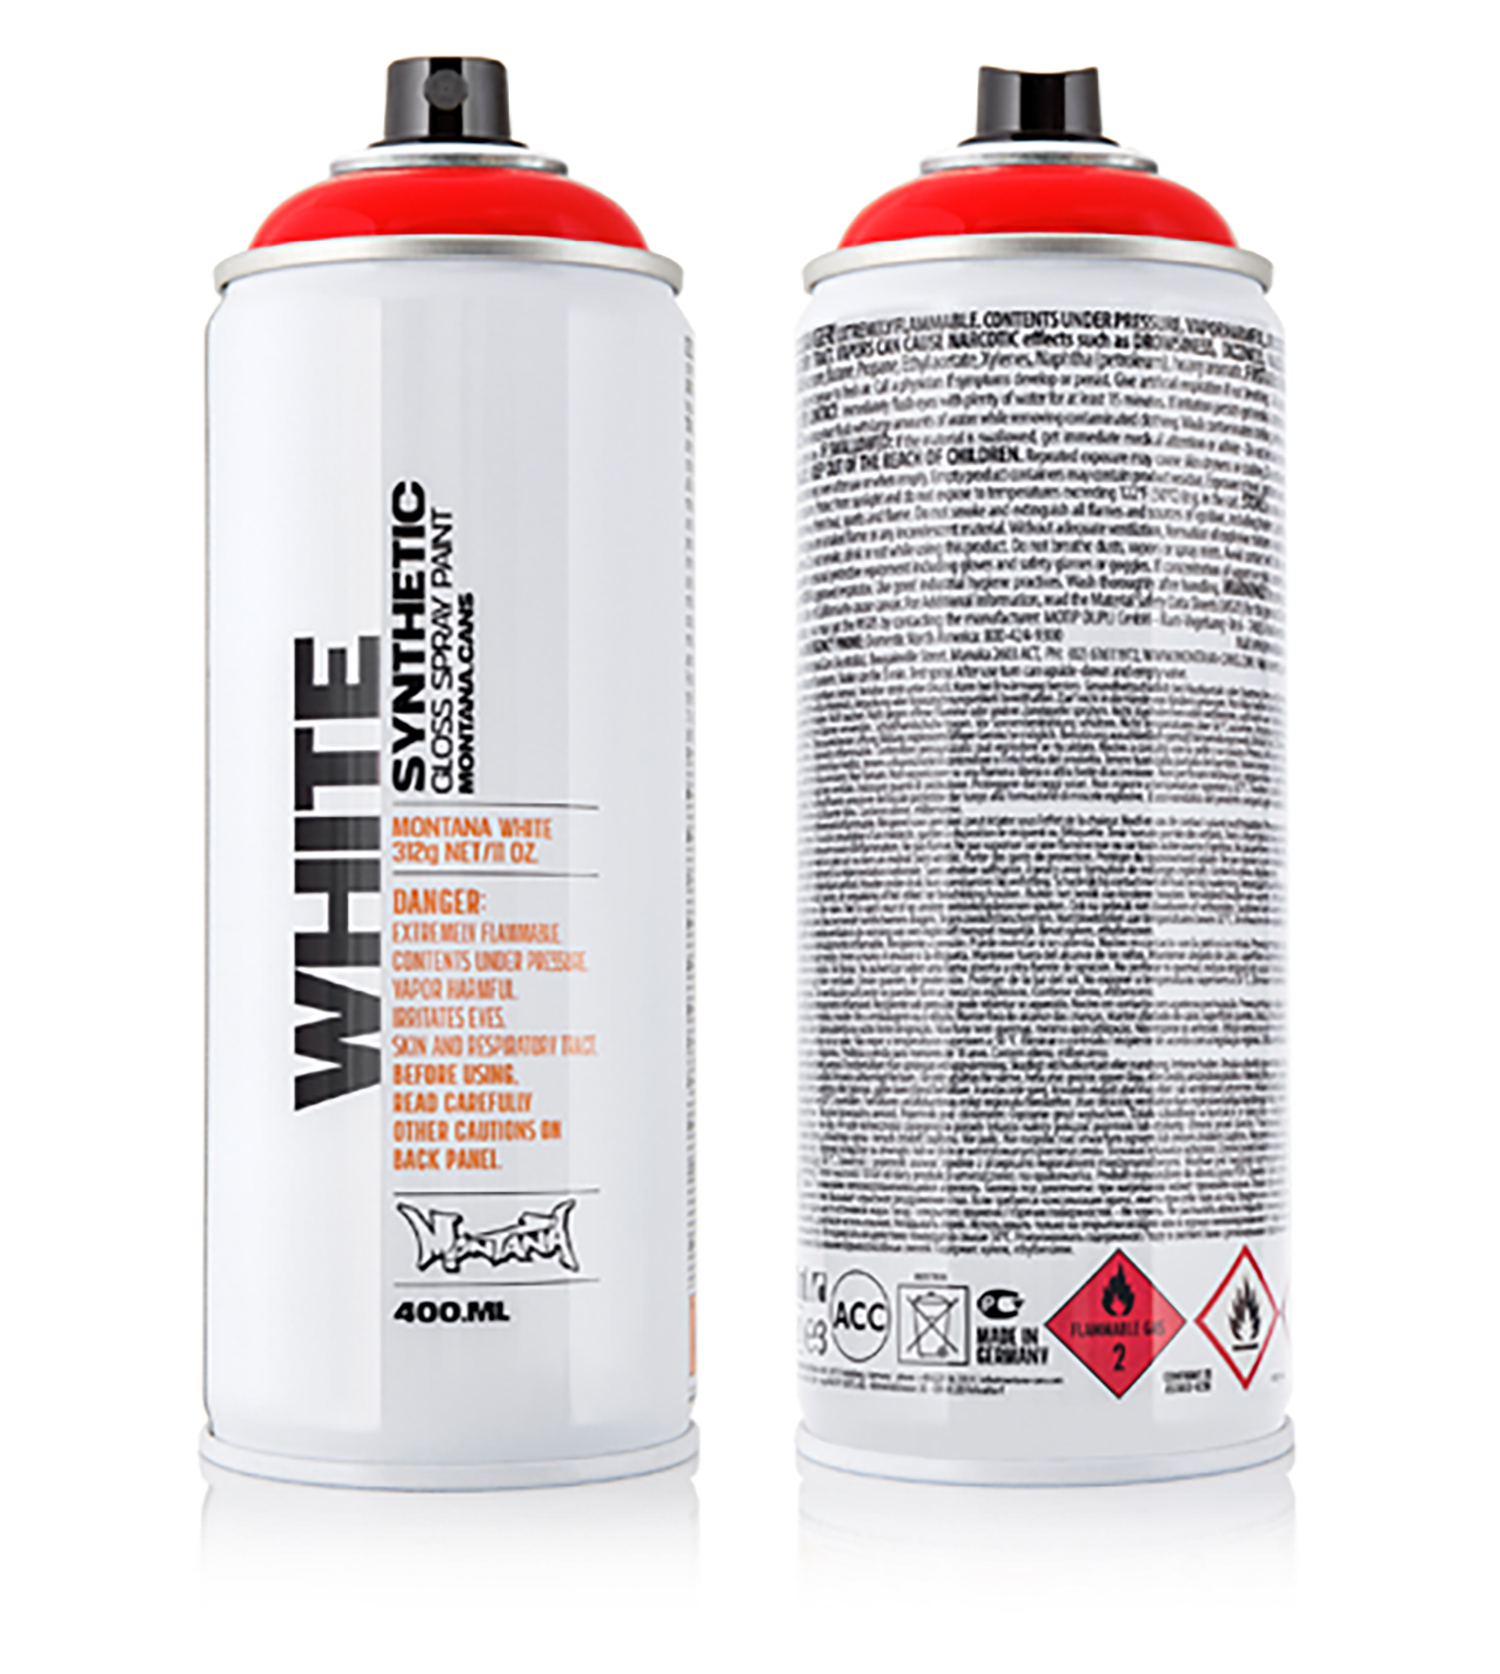 MONTANA-WHITE-SPRAY-400ML-3010